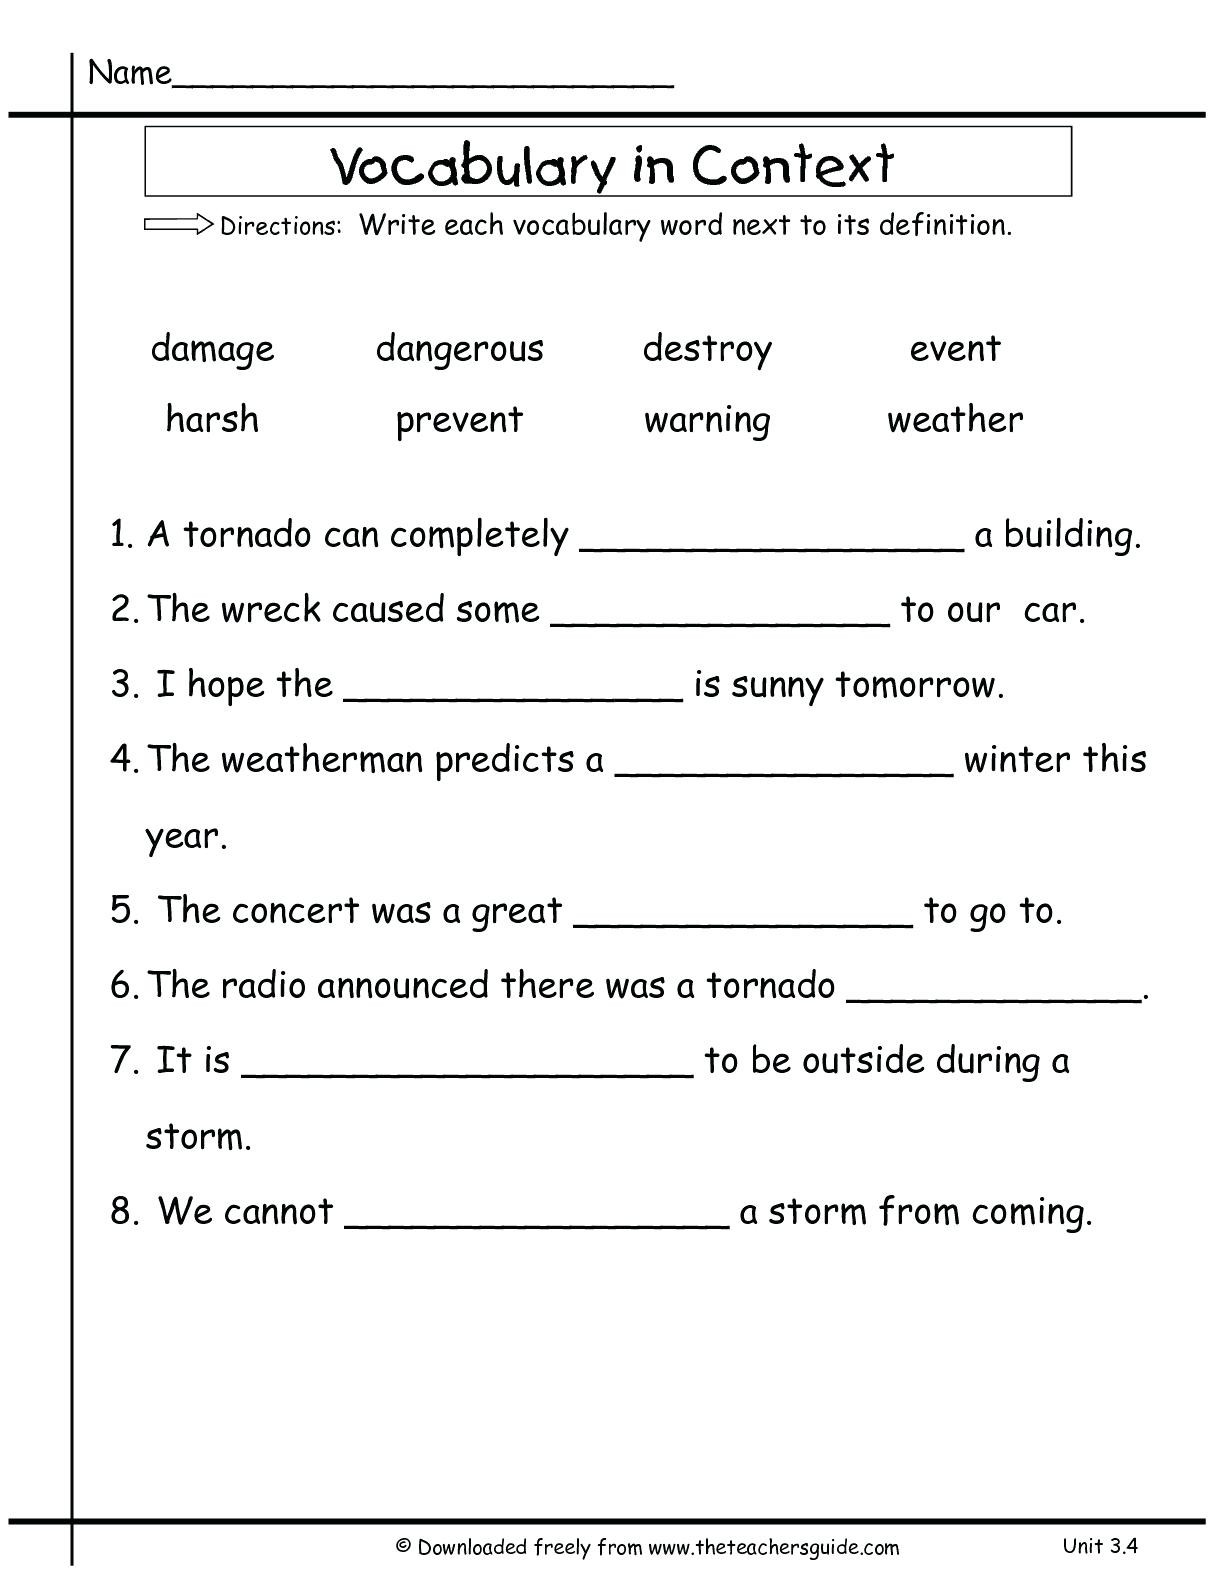 Context Clues Worksheets Grade 5 5th Grade Context Clues Worksheets these Context Clues